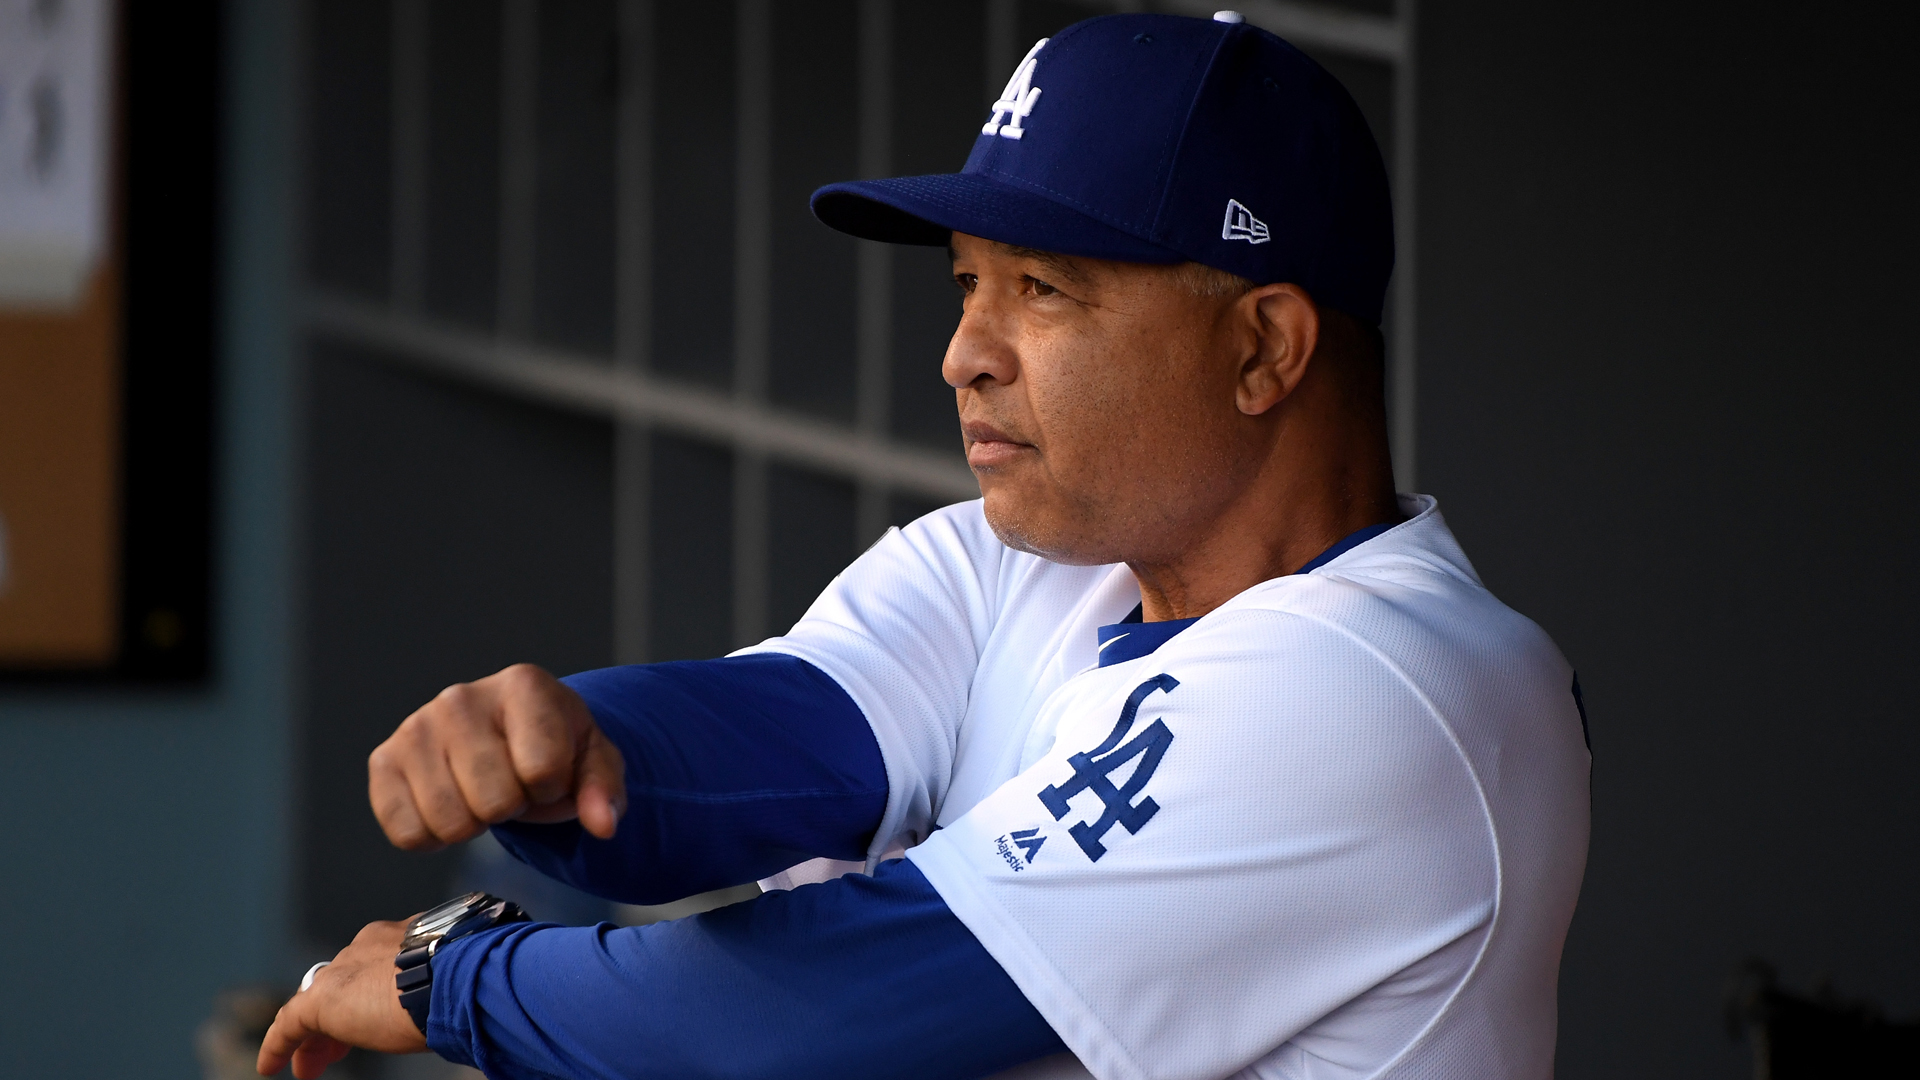 L.A. Dodgers Manager Dave Roberts looks on prior to Game Three of the 2018 World Series against the Boston Red Sox at Dodger Stadium on October 26, 2018. (Photo by Harry How/Getty Images)